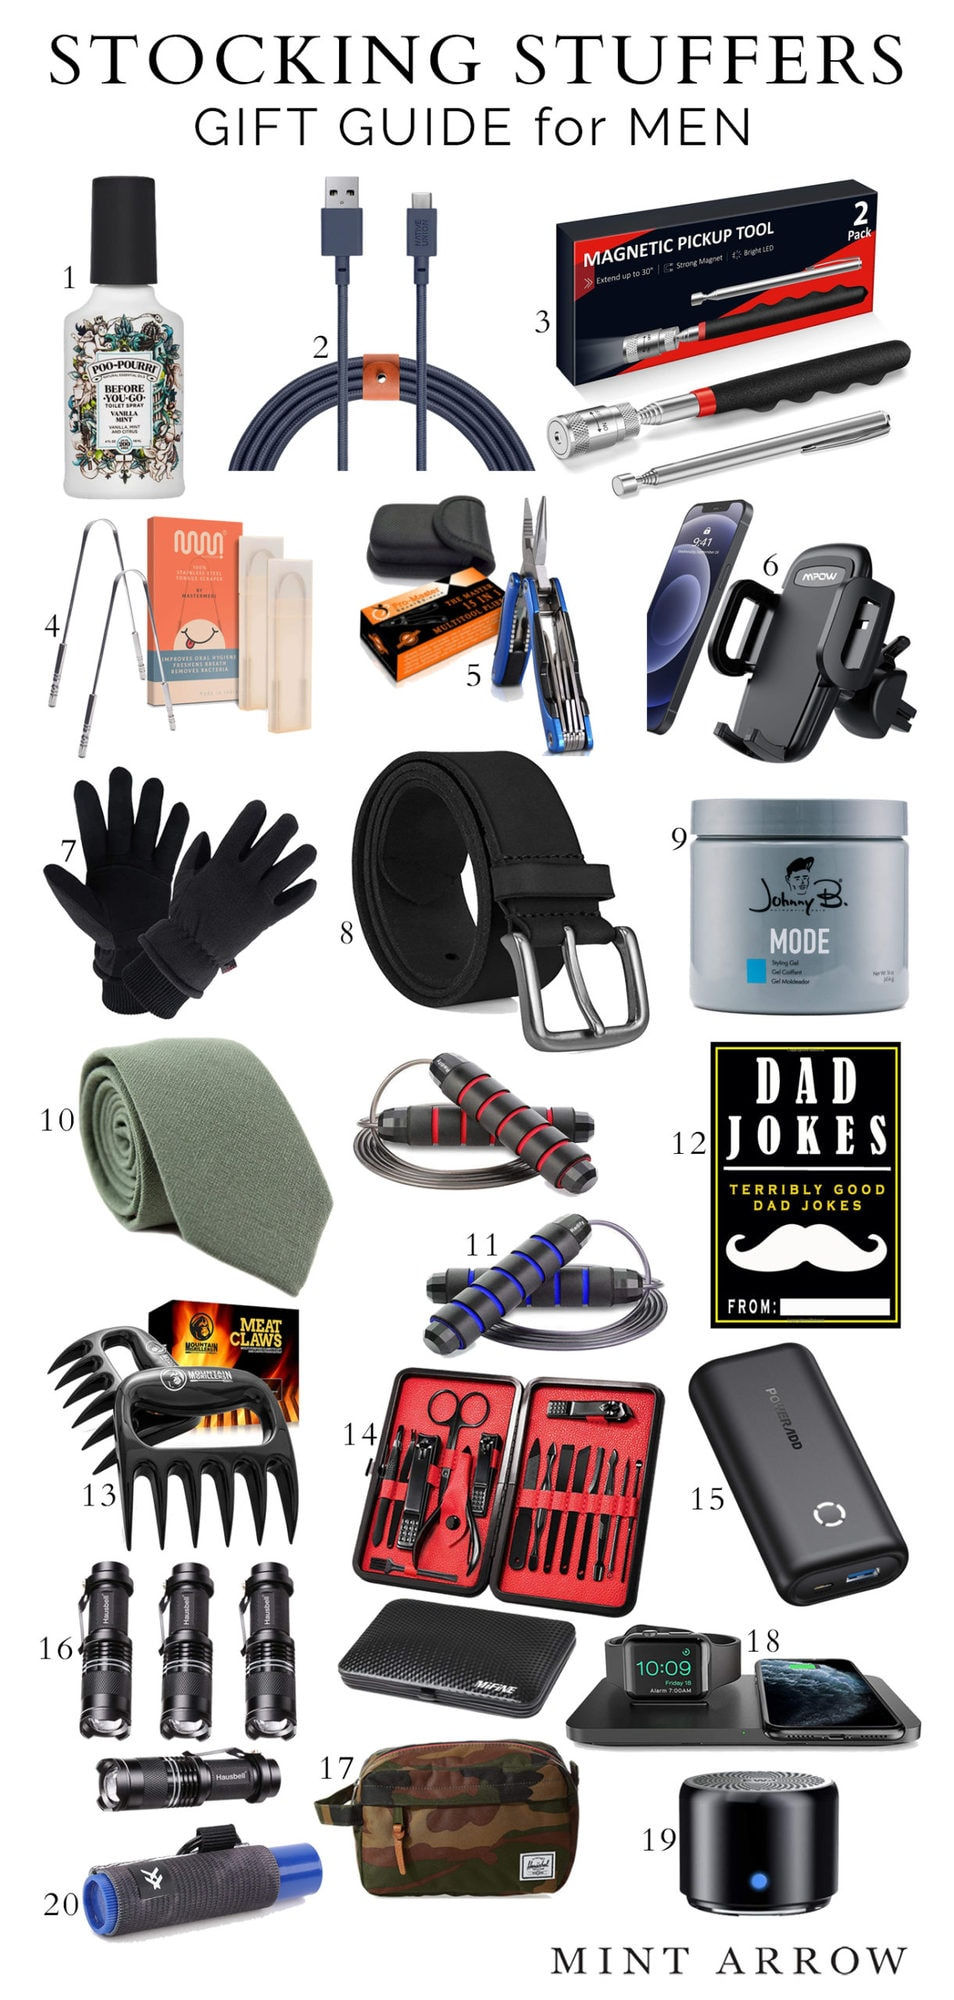 best stocking stuffers for men and women that ship in time for Christmas